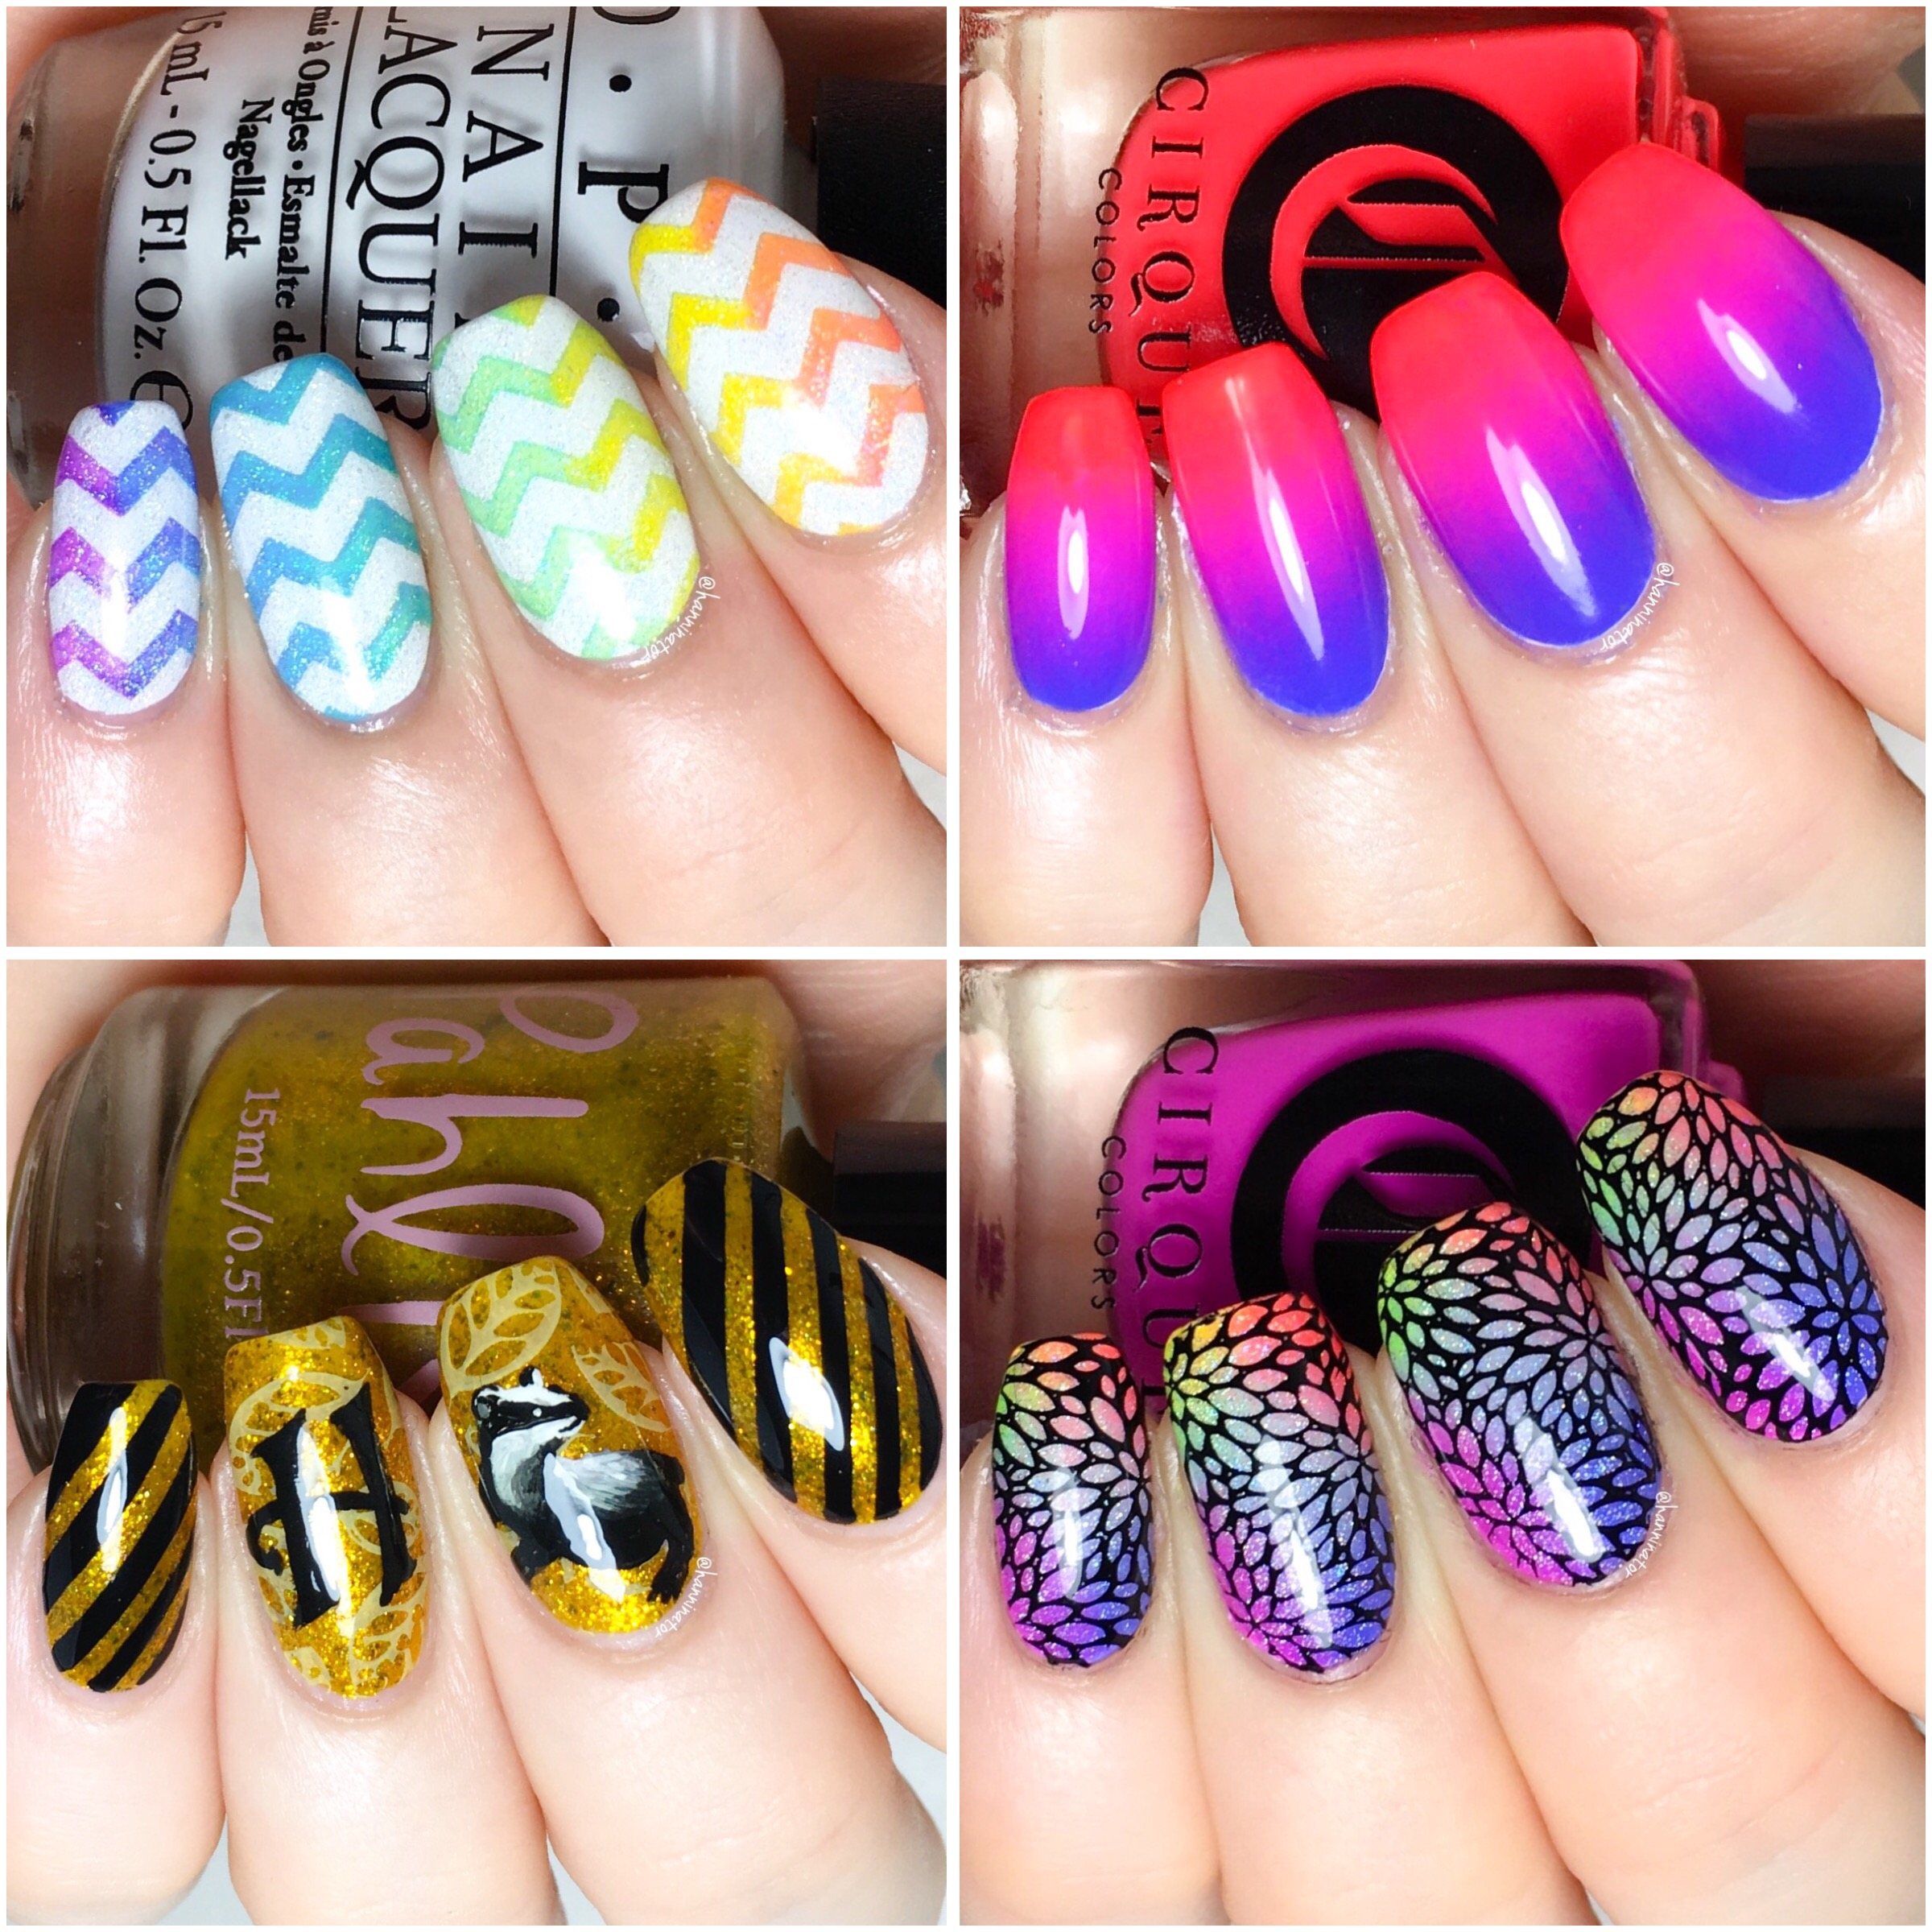 Lina nail art supplies hanninator my absolute favorite design from march is my freehanded hufflepuff nails which one of these designs do you like the most prinsesfo Gallery